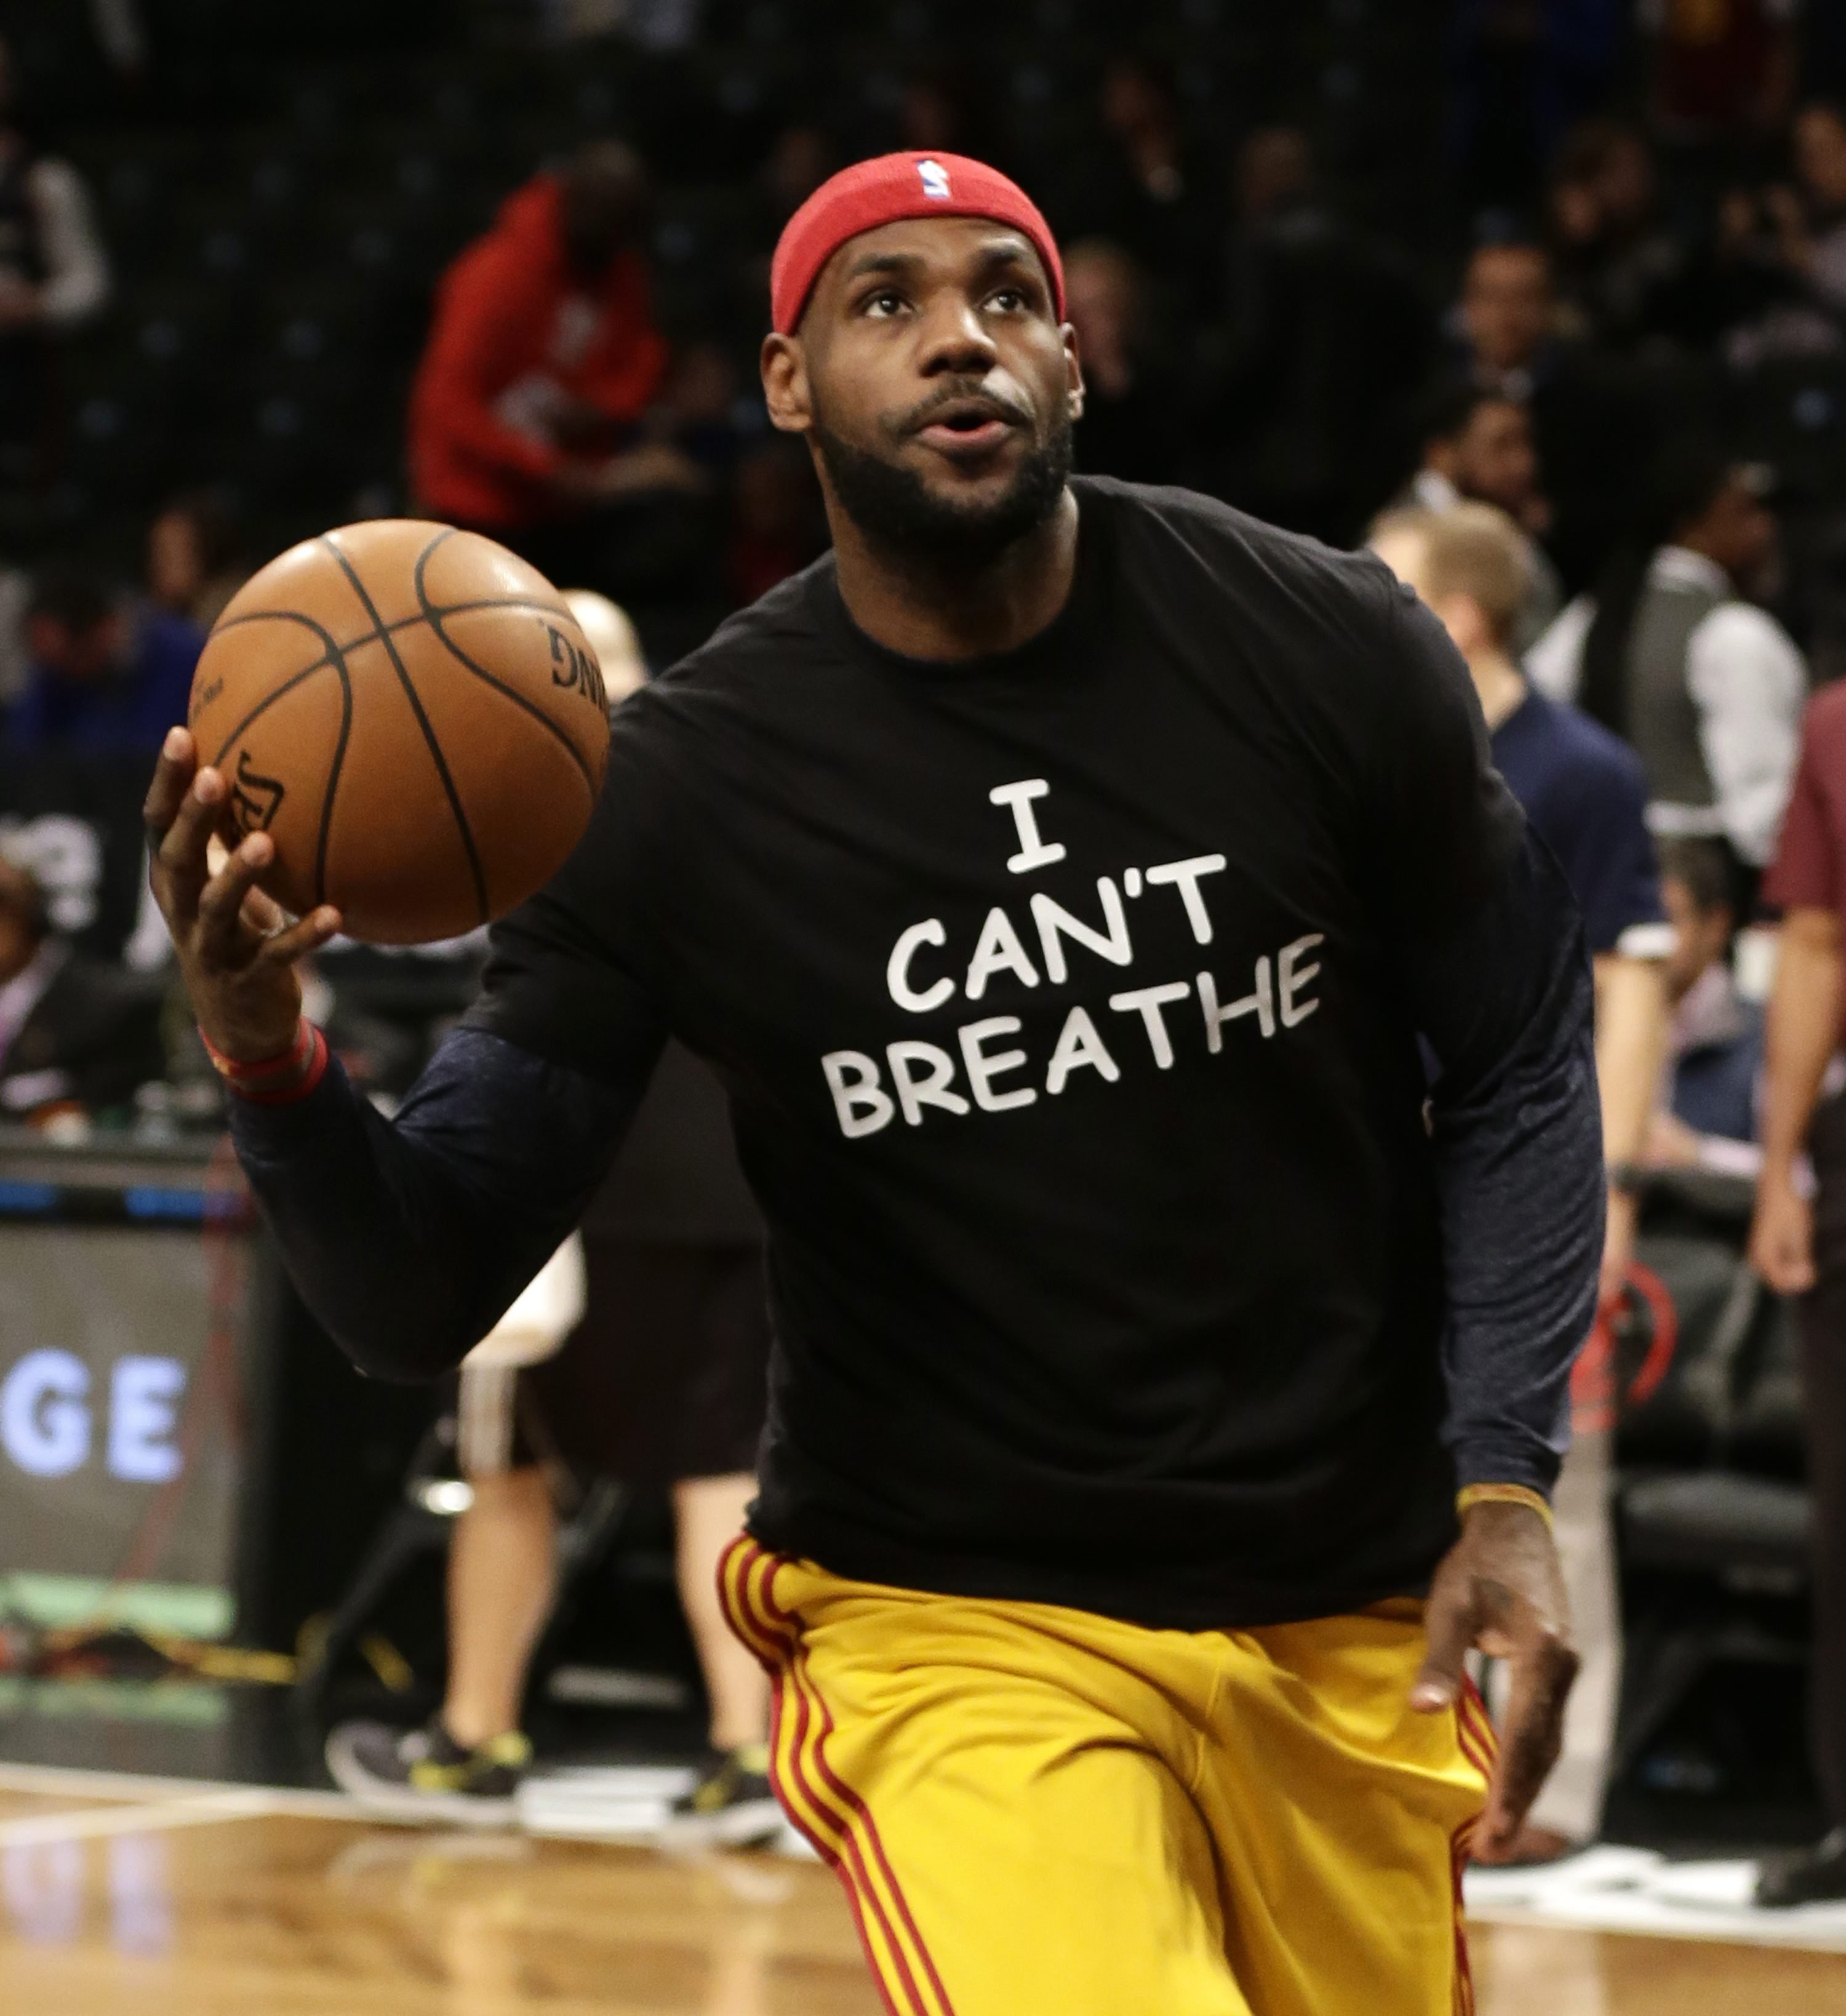 Cleveland Cavaliers forward LeBron James warms up before an NBA basketball game against the Brooklyn Nets at the Barclays Center on Dec. 8, 2014, in New York.